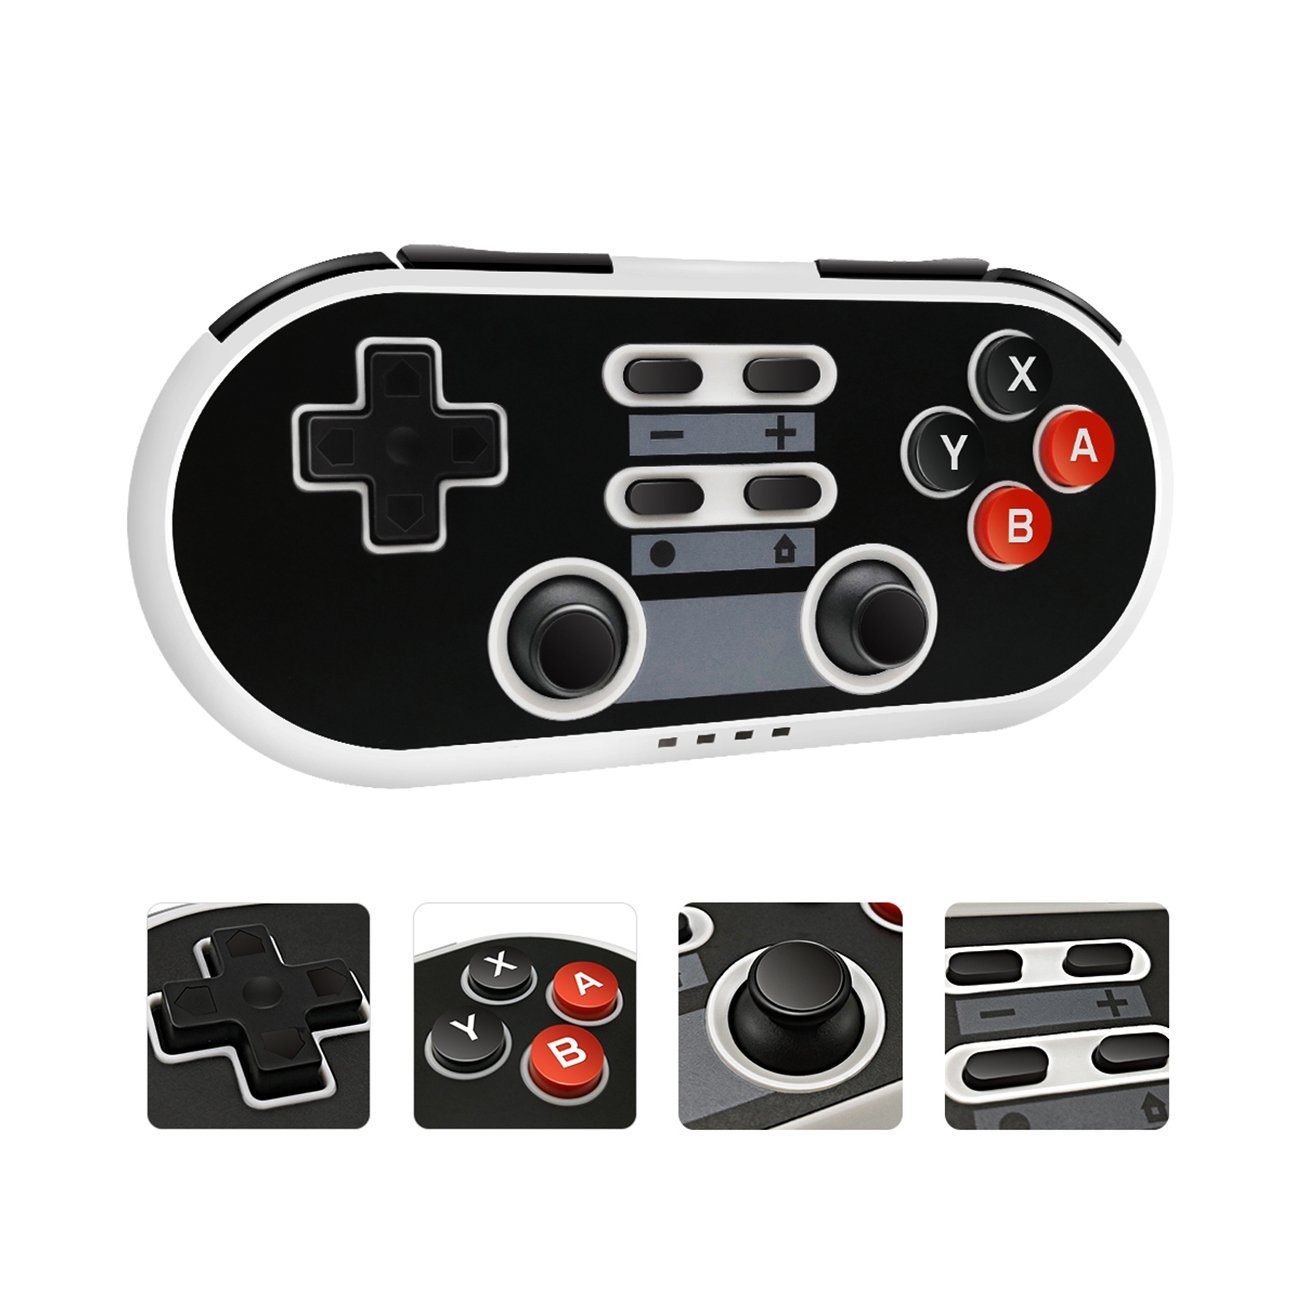 Switch Controller for Nintendo Switch RRISCI [Classical Edition] Double Vibration Motors 6-Axis Gamepad Joystick Support PC/Android/PS3